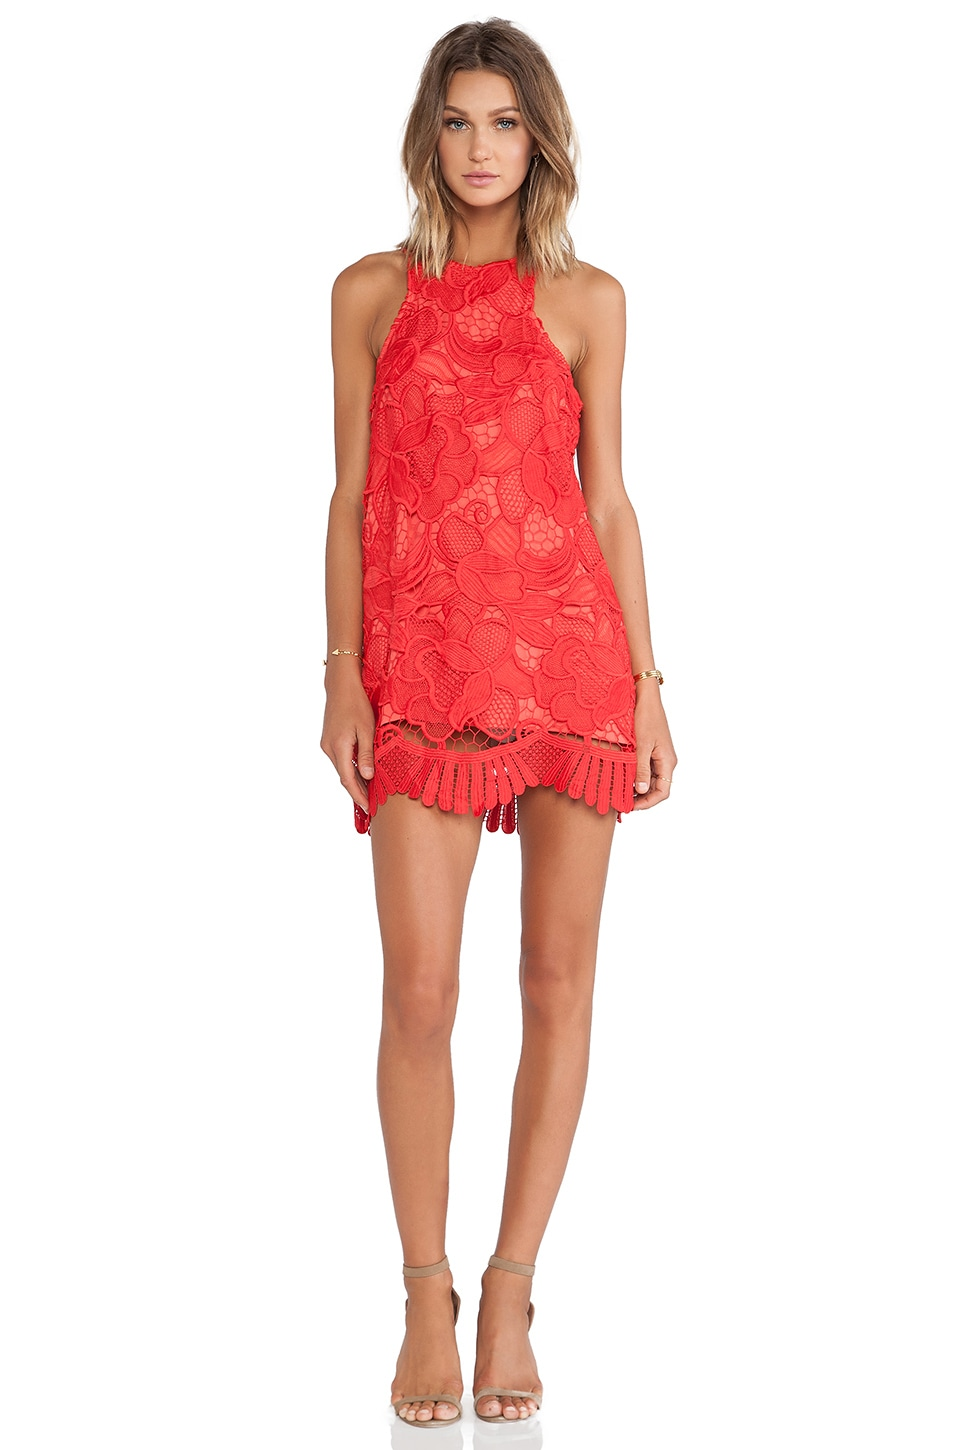 Caspian Shift Dress             Lovers + Friends                                                                                                                                         Sale price:                                                                       CA$ 115.68                                                                                                  Previous price:                                                                       CA$ 239.34 2